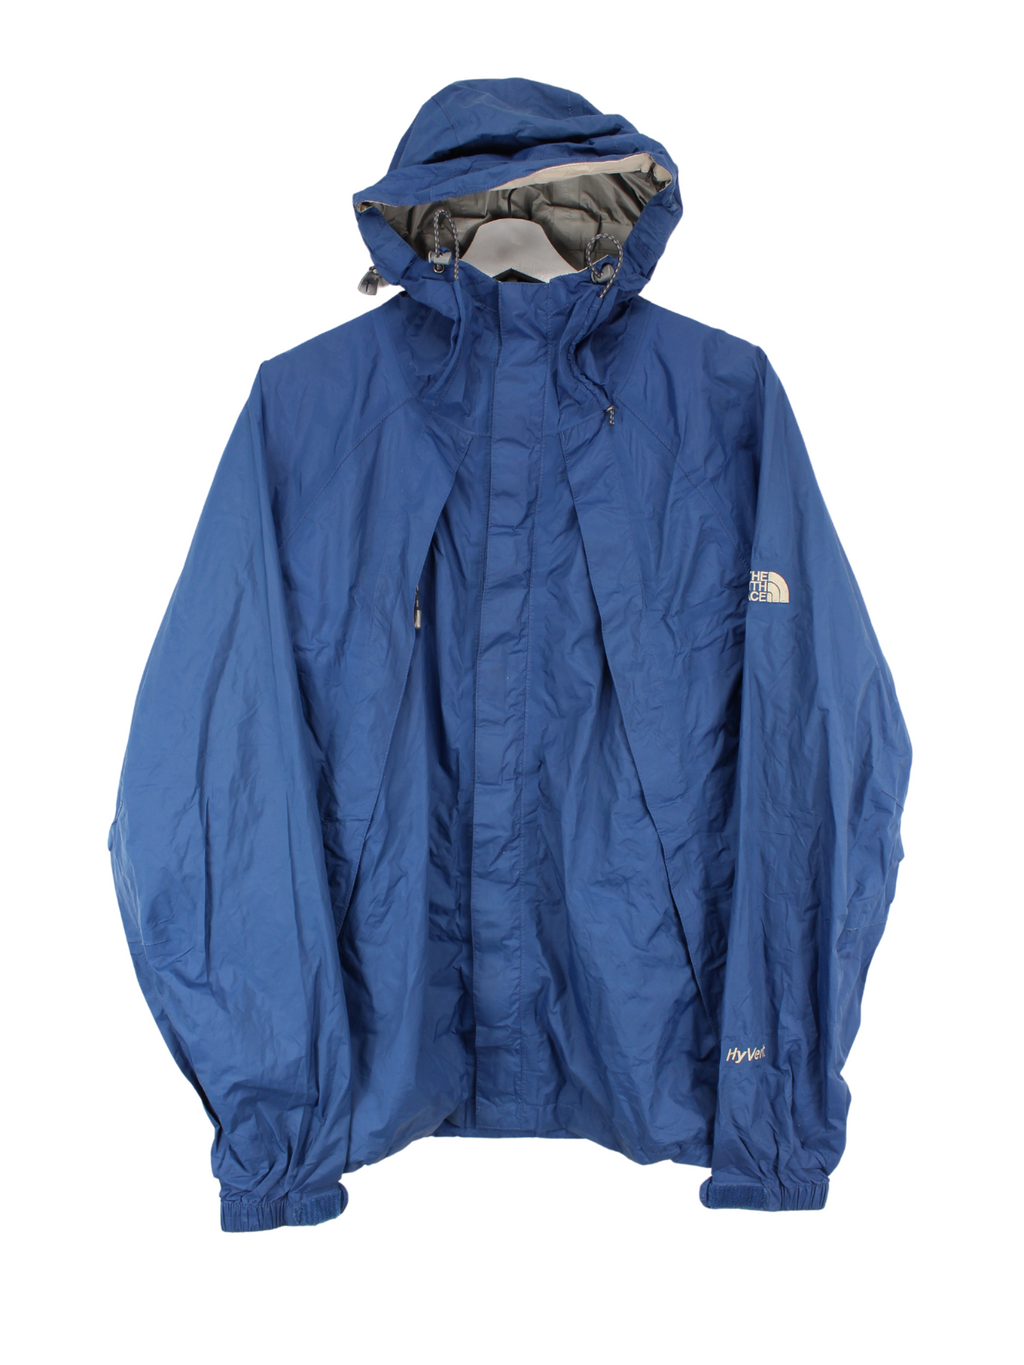 The North Face Windjacke Blau L